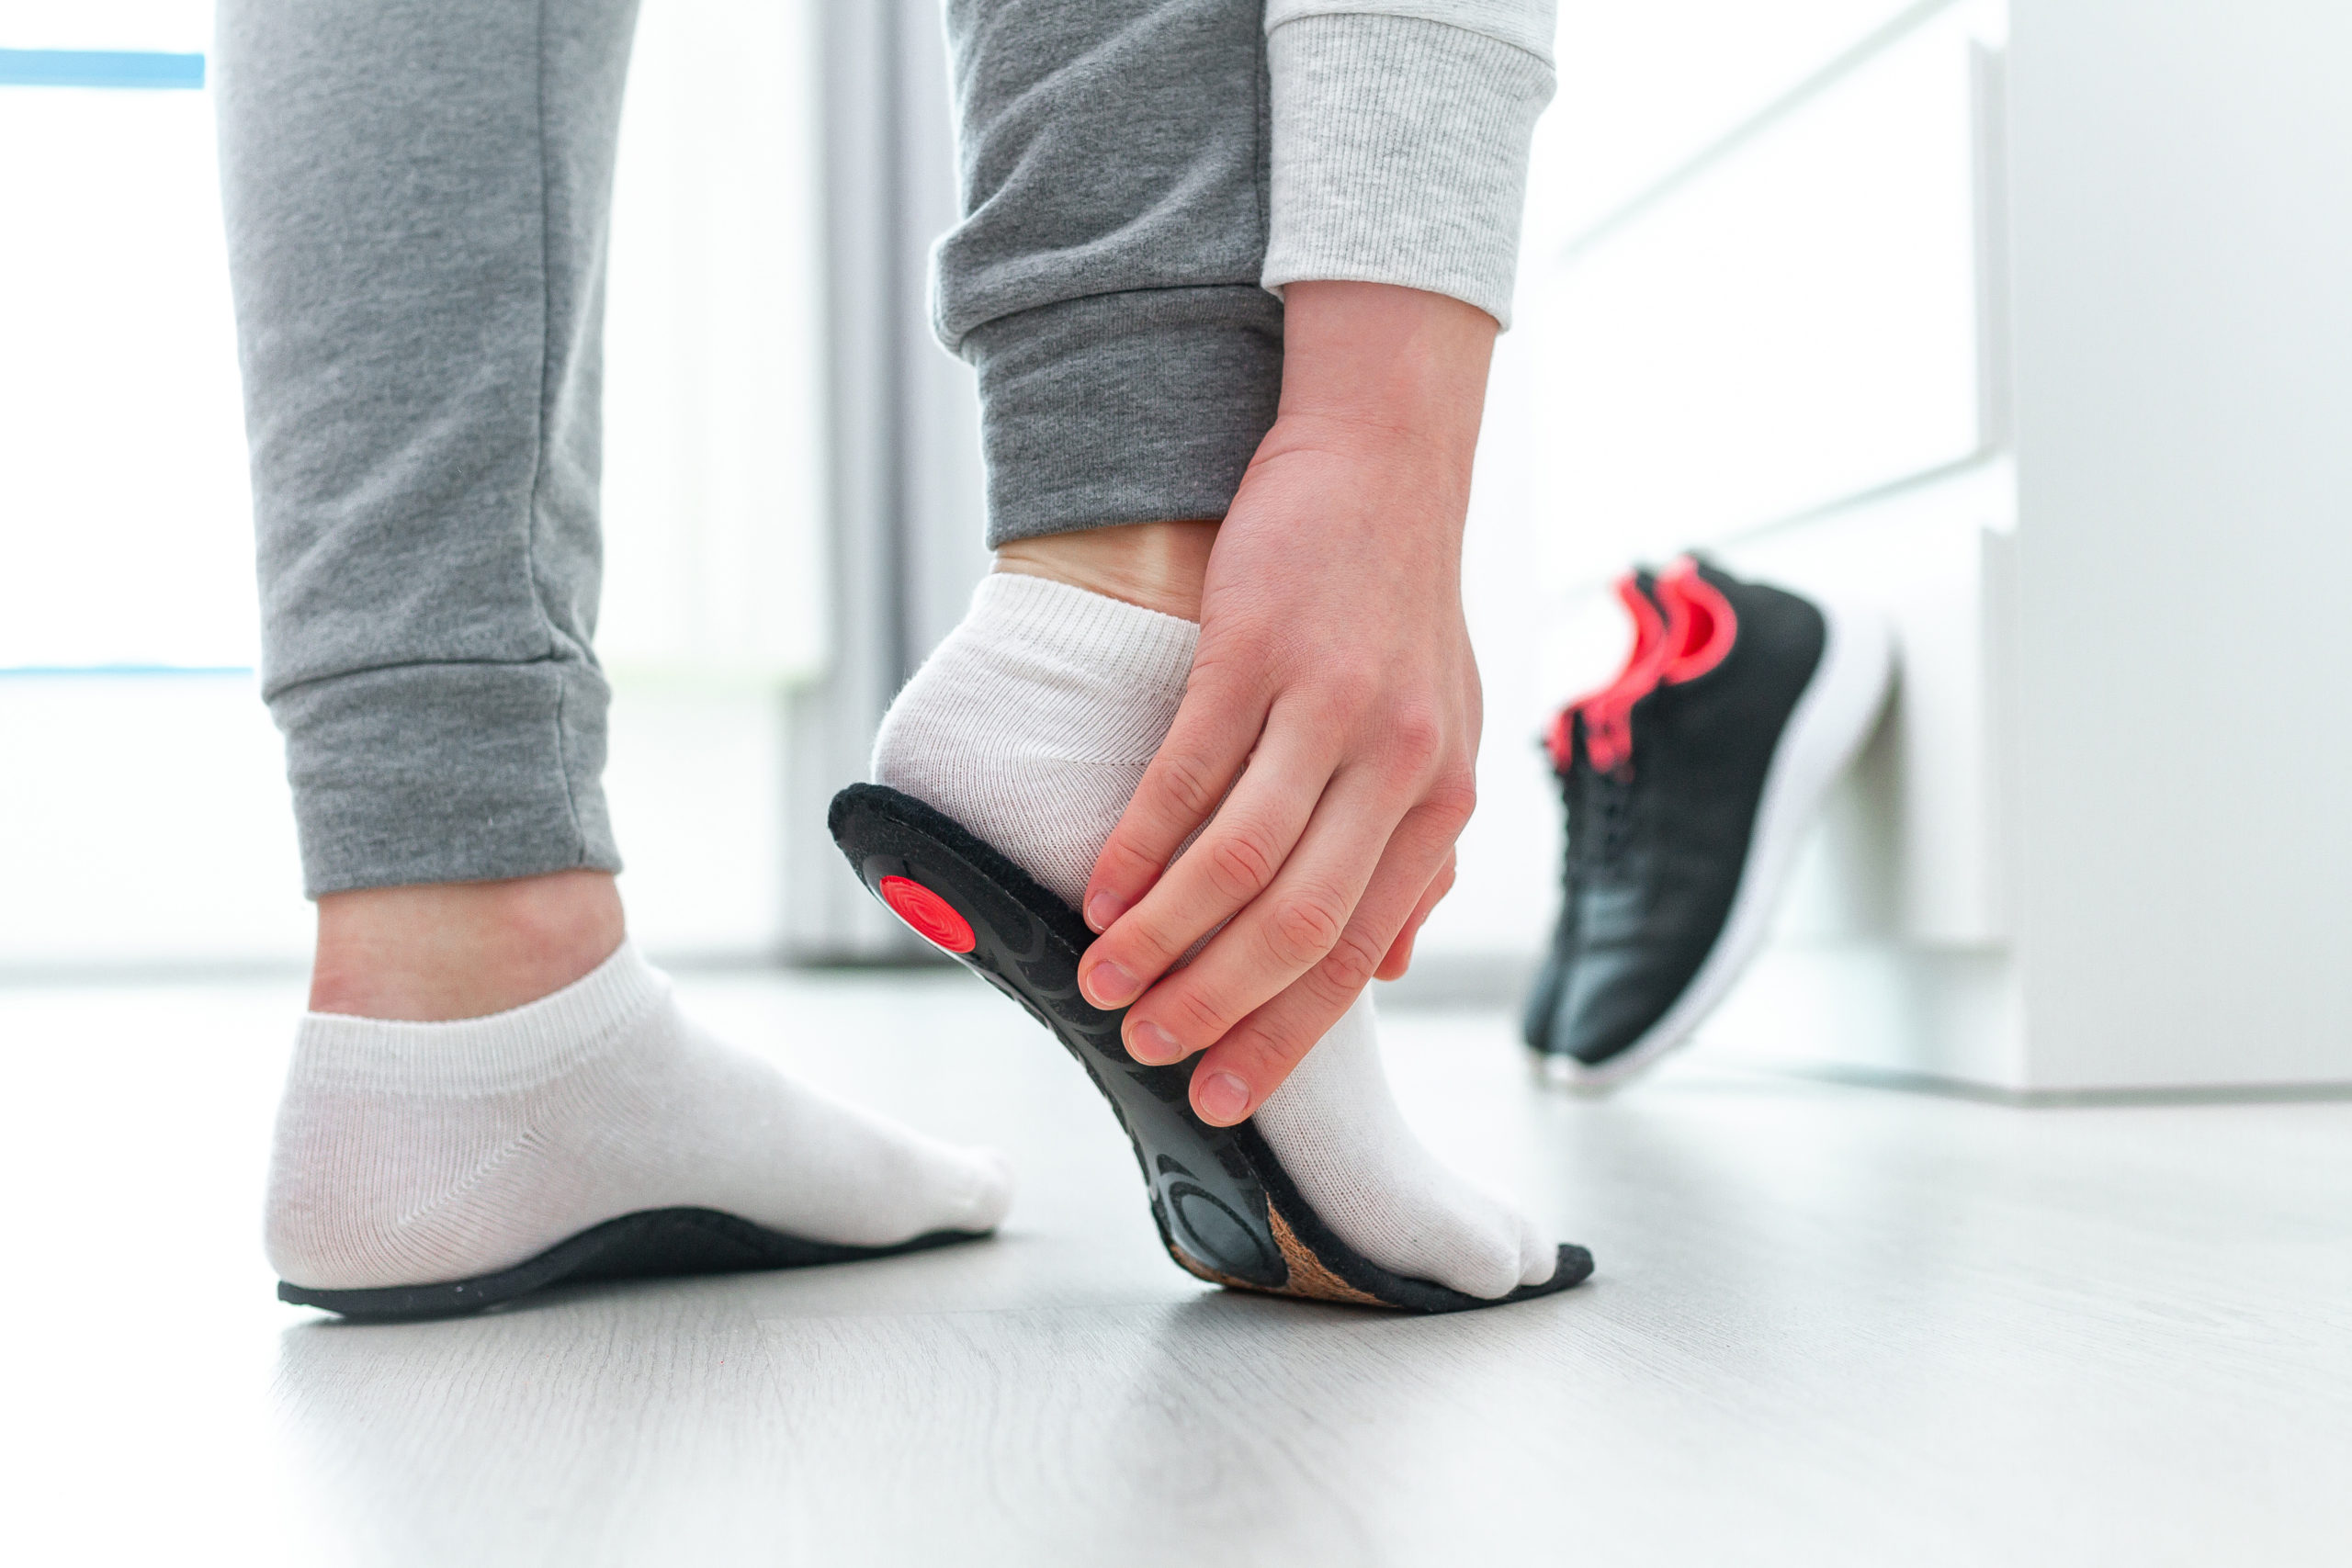 Urban Body Physiotherapy and Rehabilitation provides bespoke orthotics in solihull